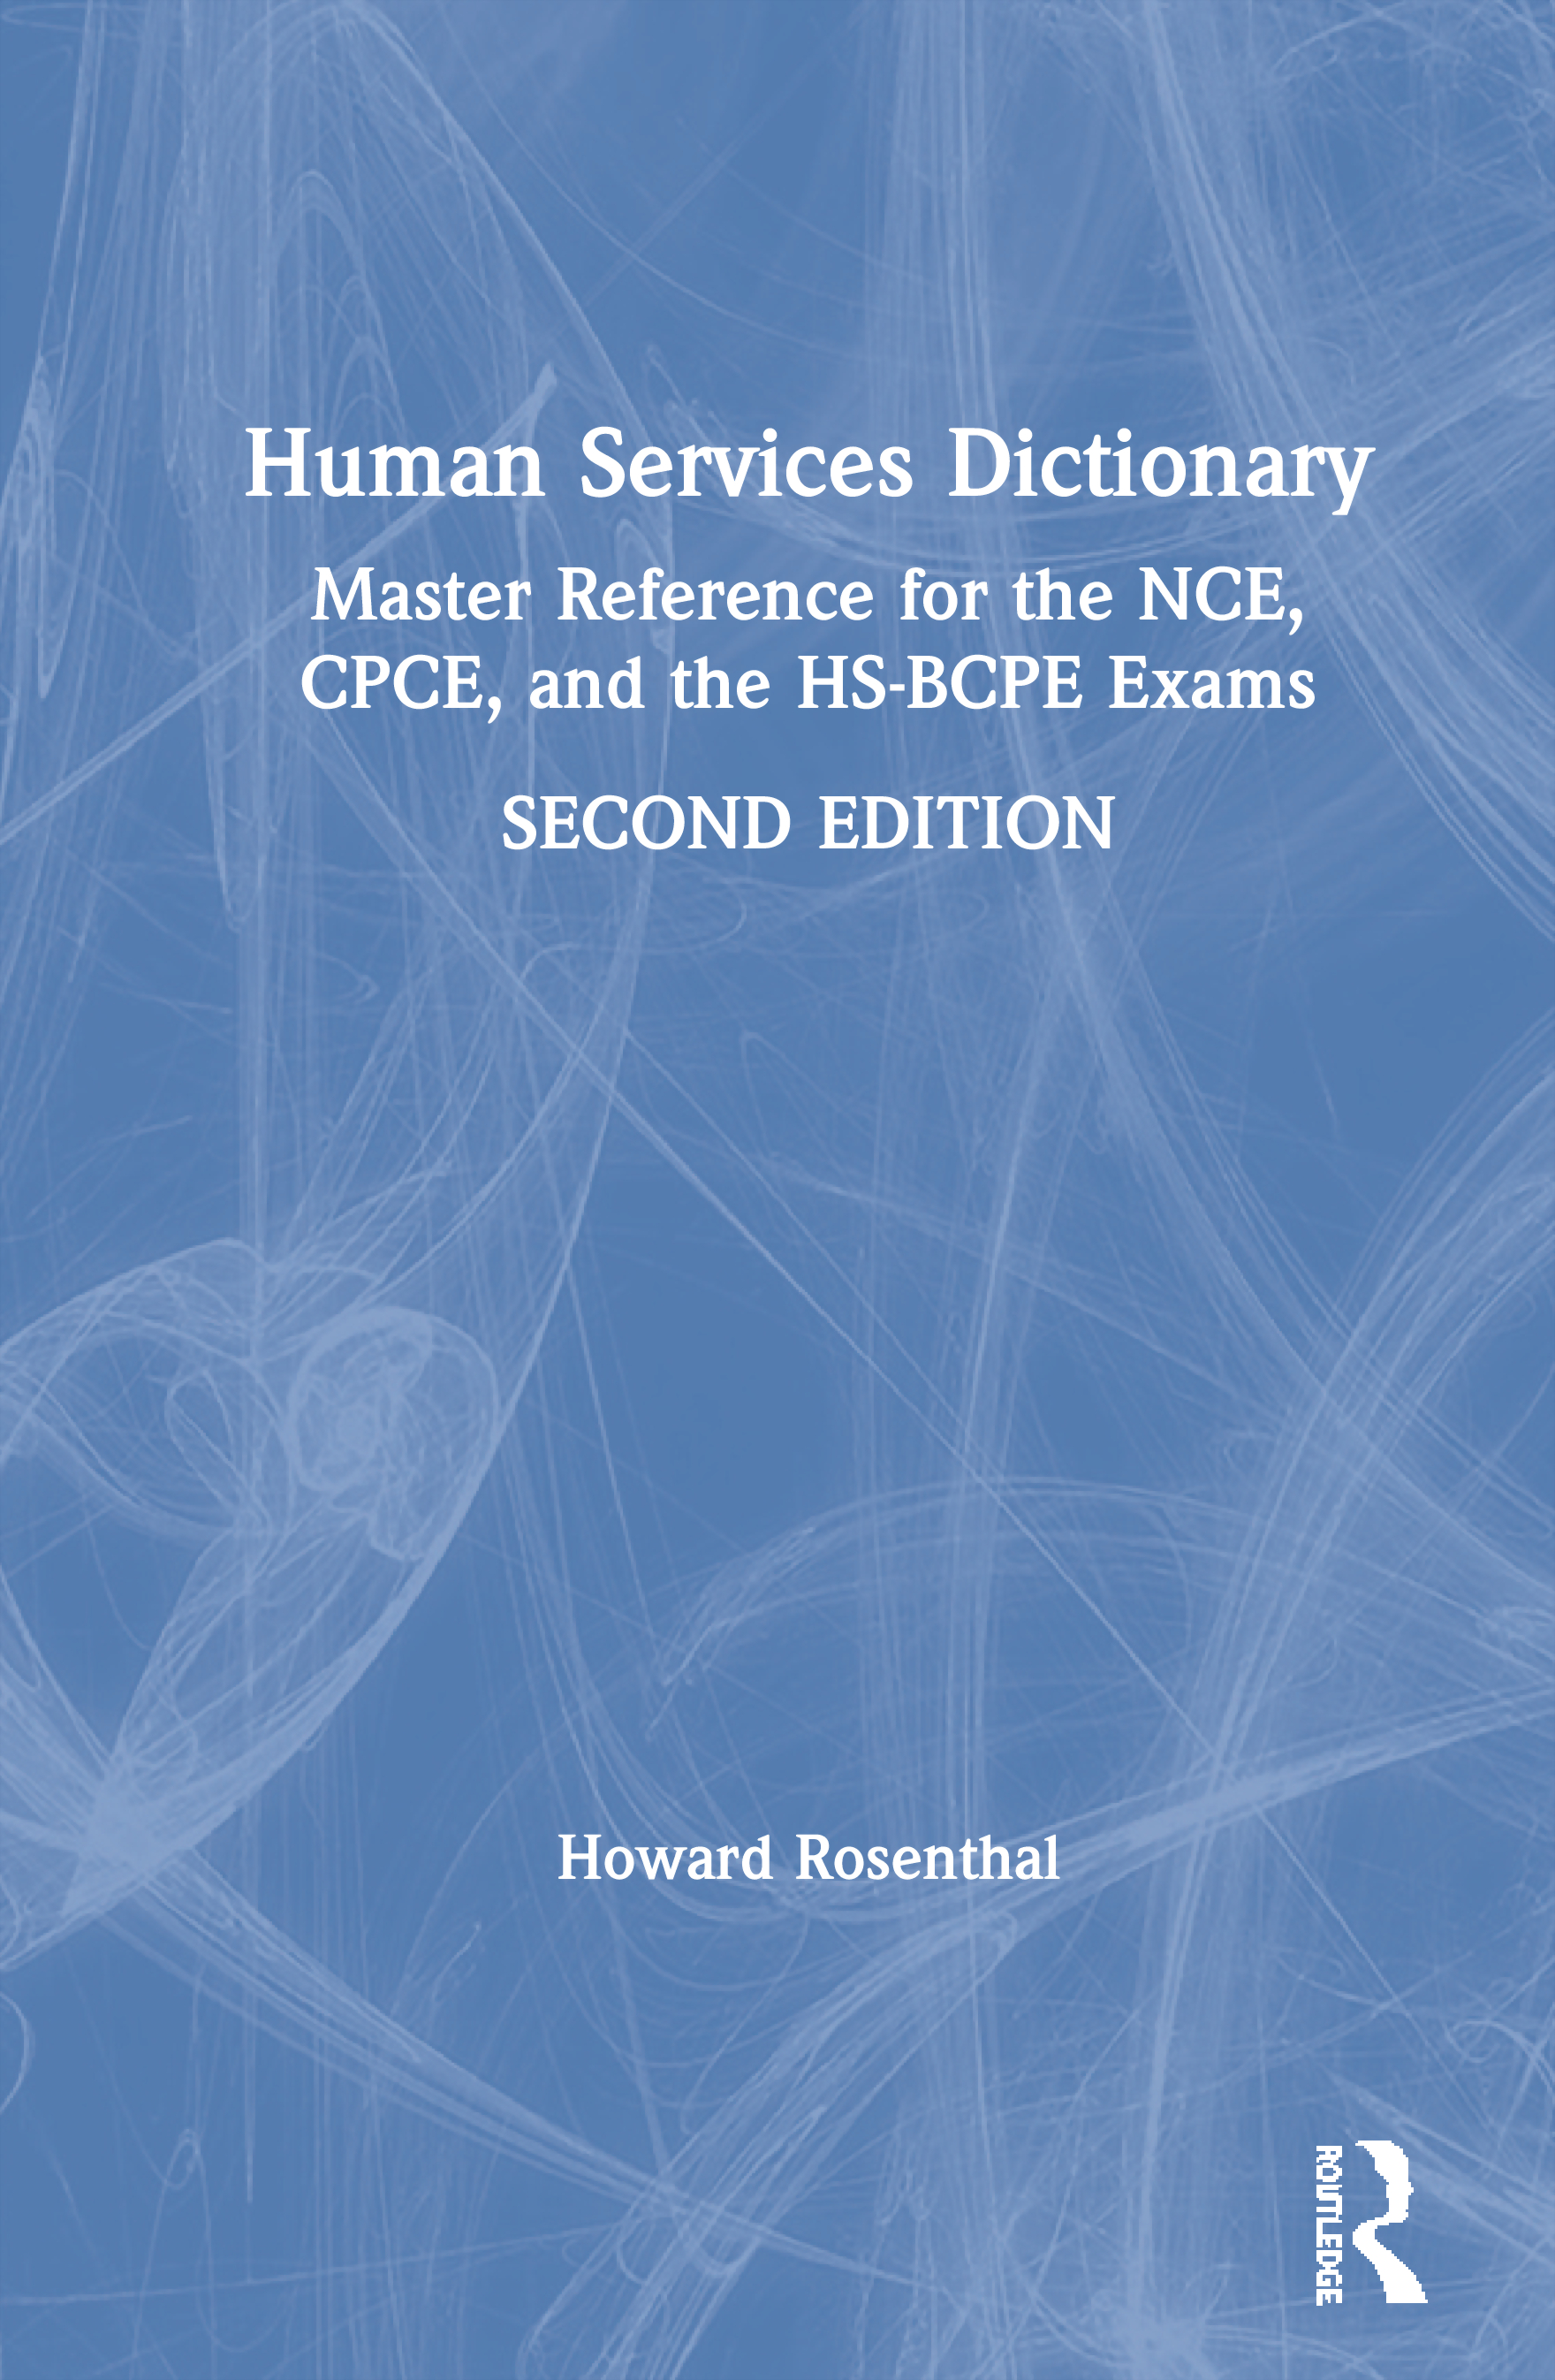 Human Services Dictionary: Master Reference for the NCE, CPCE, and the HS-BCPE Exams, 2nd ed book cover